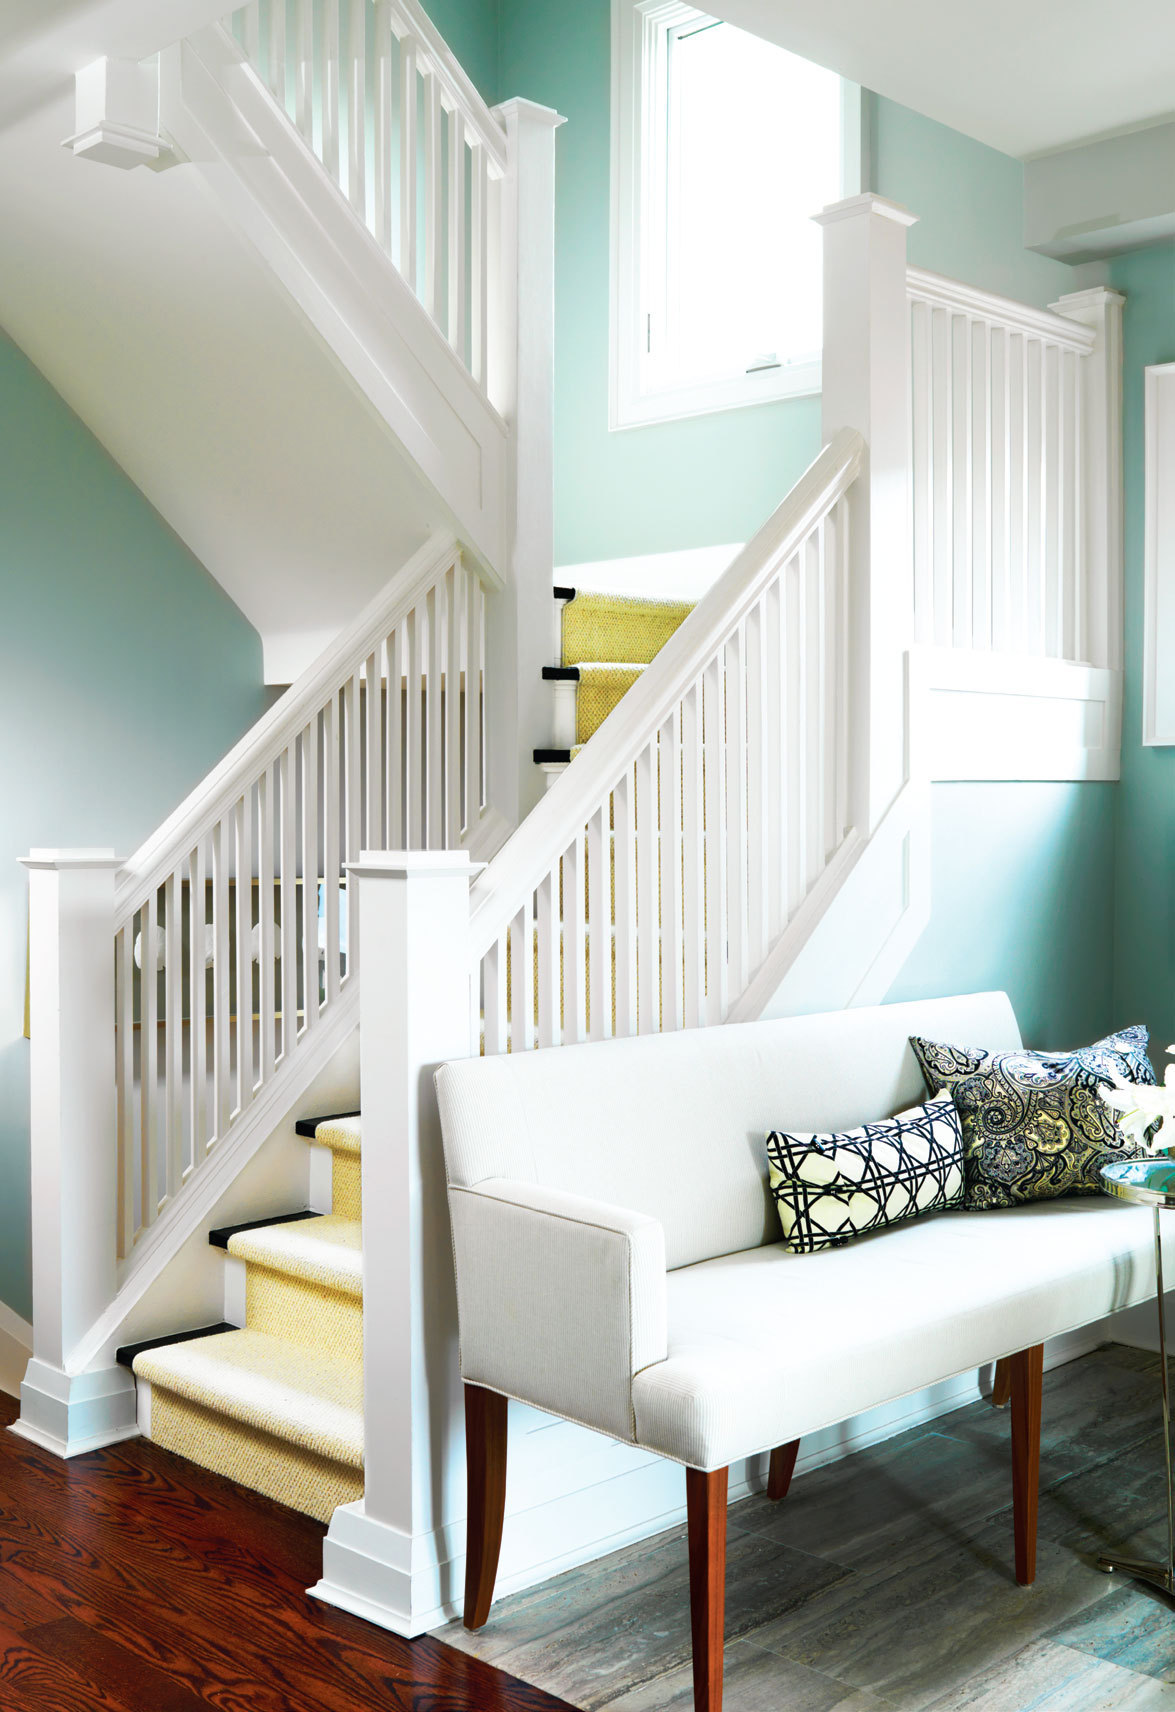 Home Design Ideas Buch: Sarah Richardson's Design Tips On Creating A Welcoming